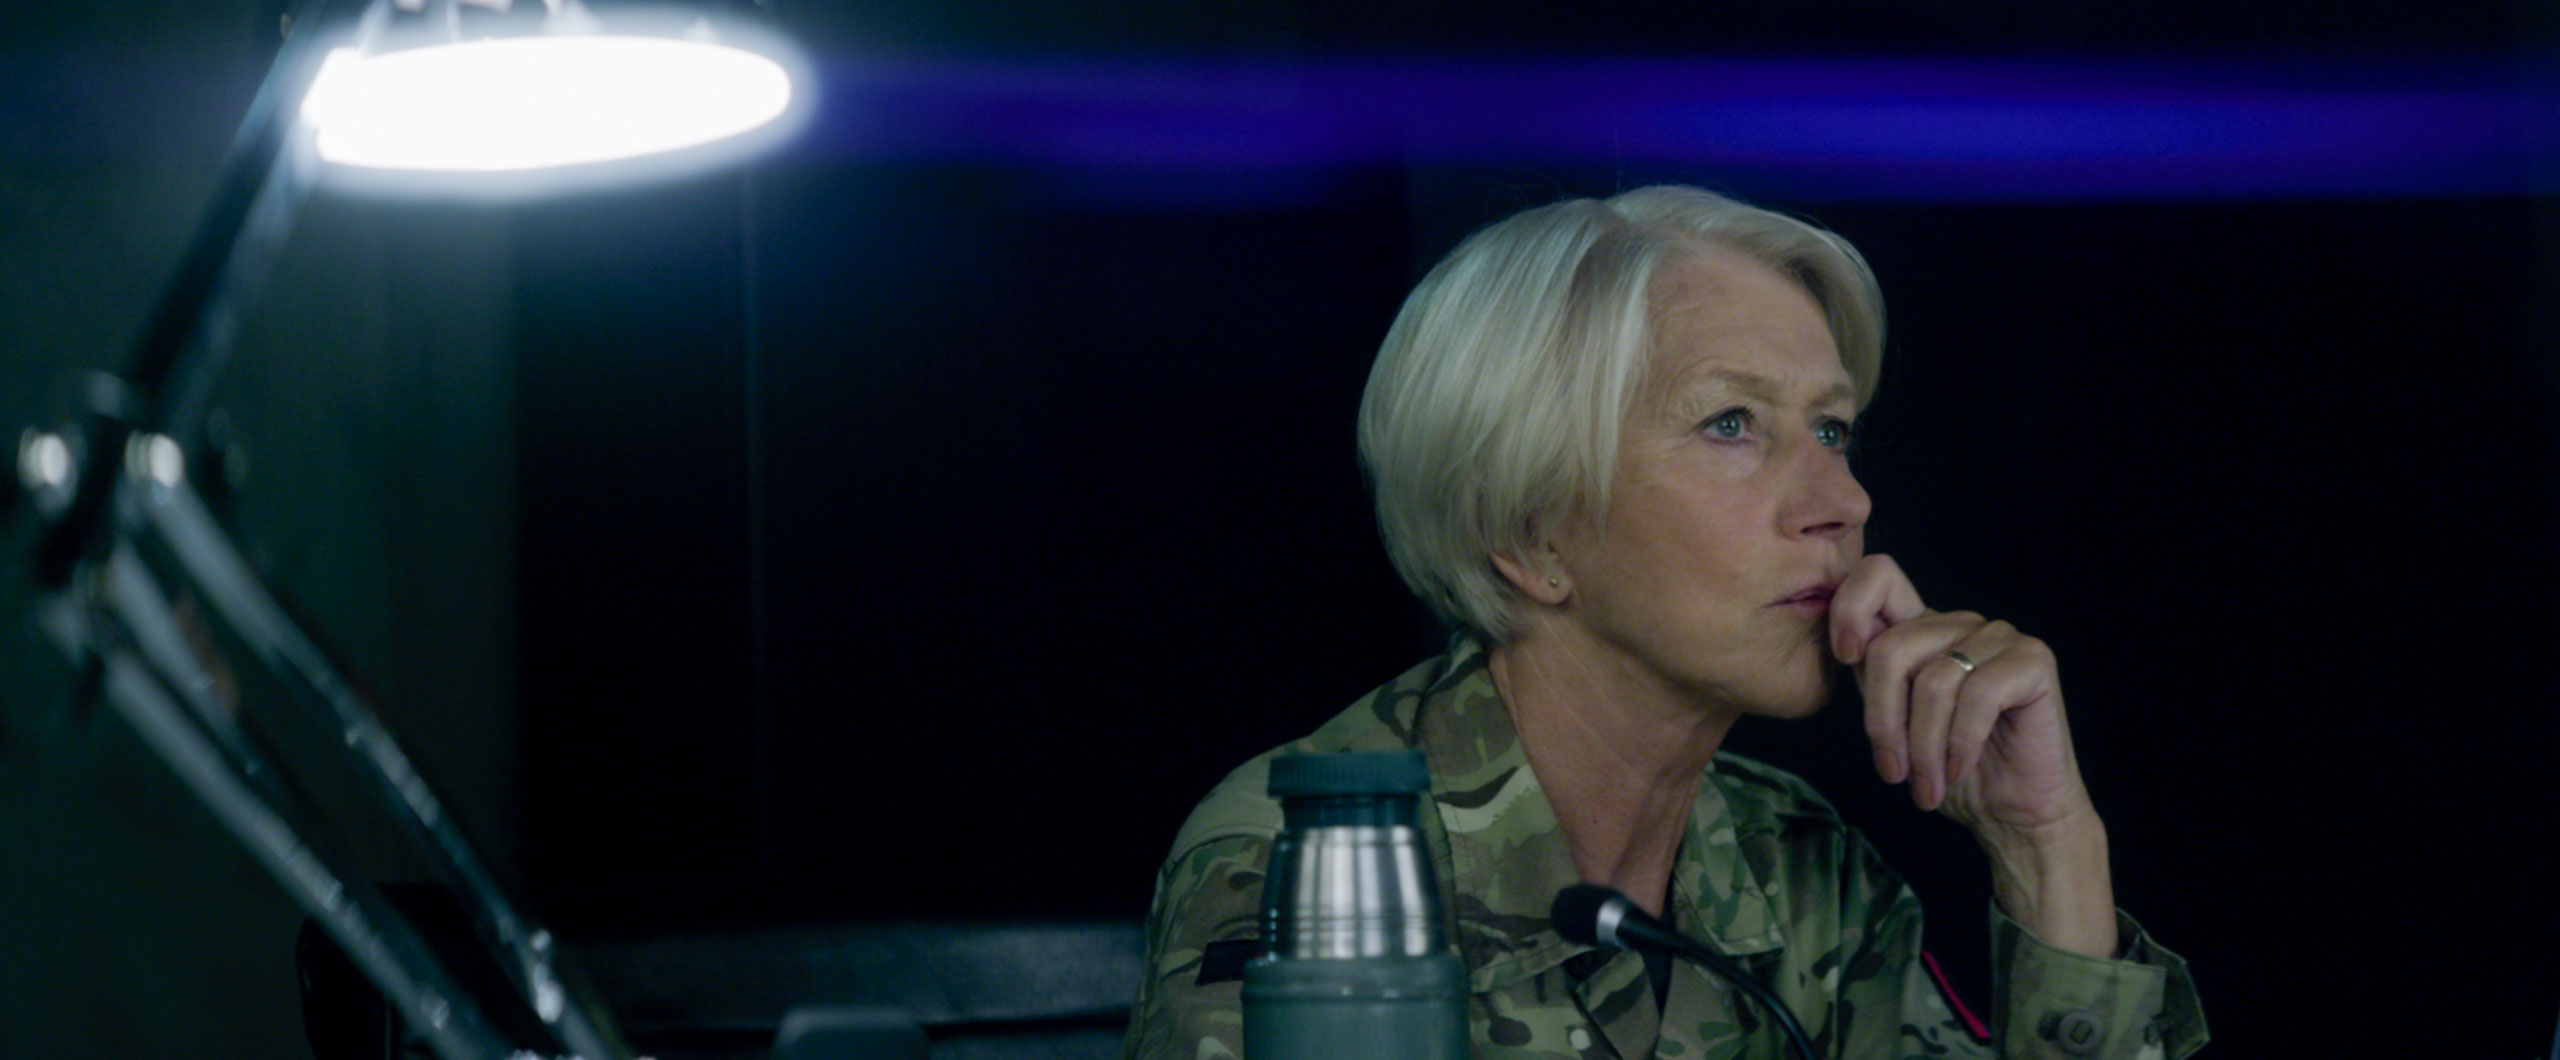 Eye In The Sky Wallpapers Movie Hq Eye In The Sky Pictures 4k Wallpapers 2019